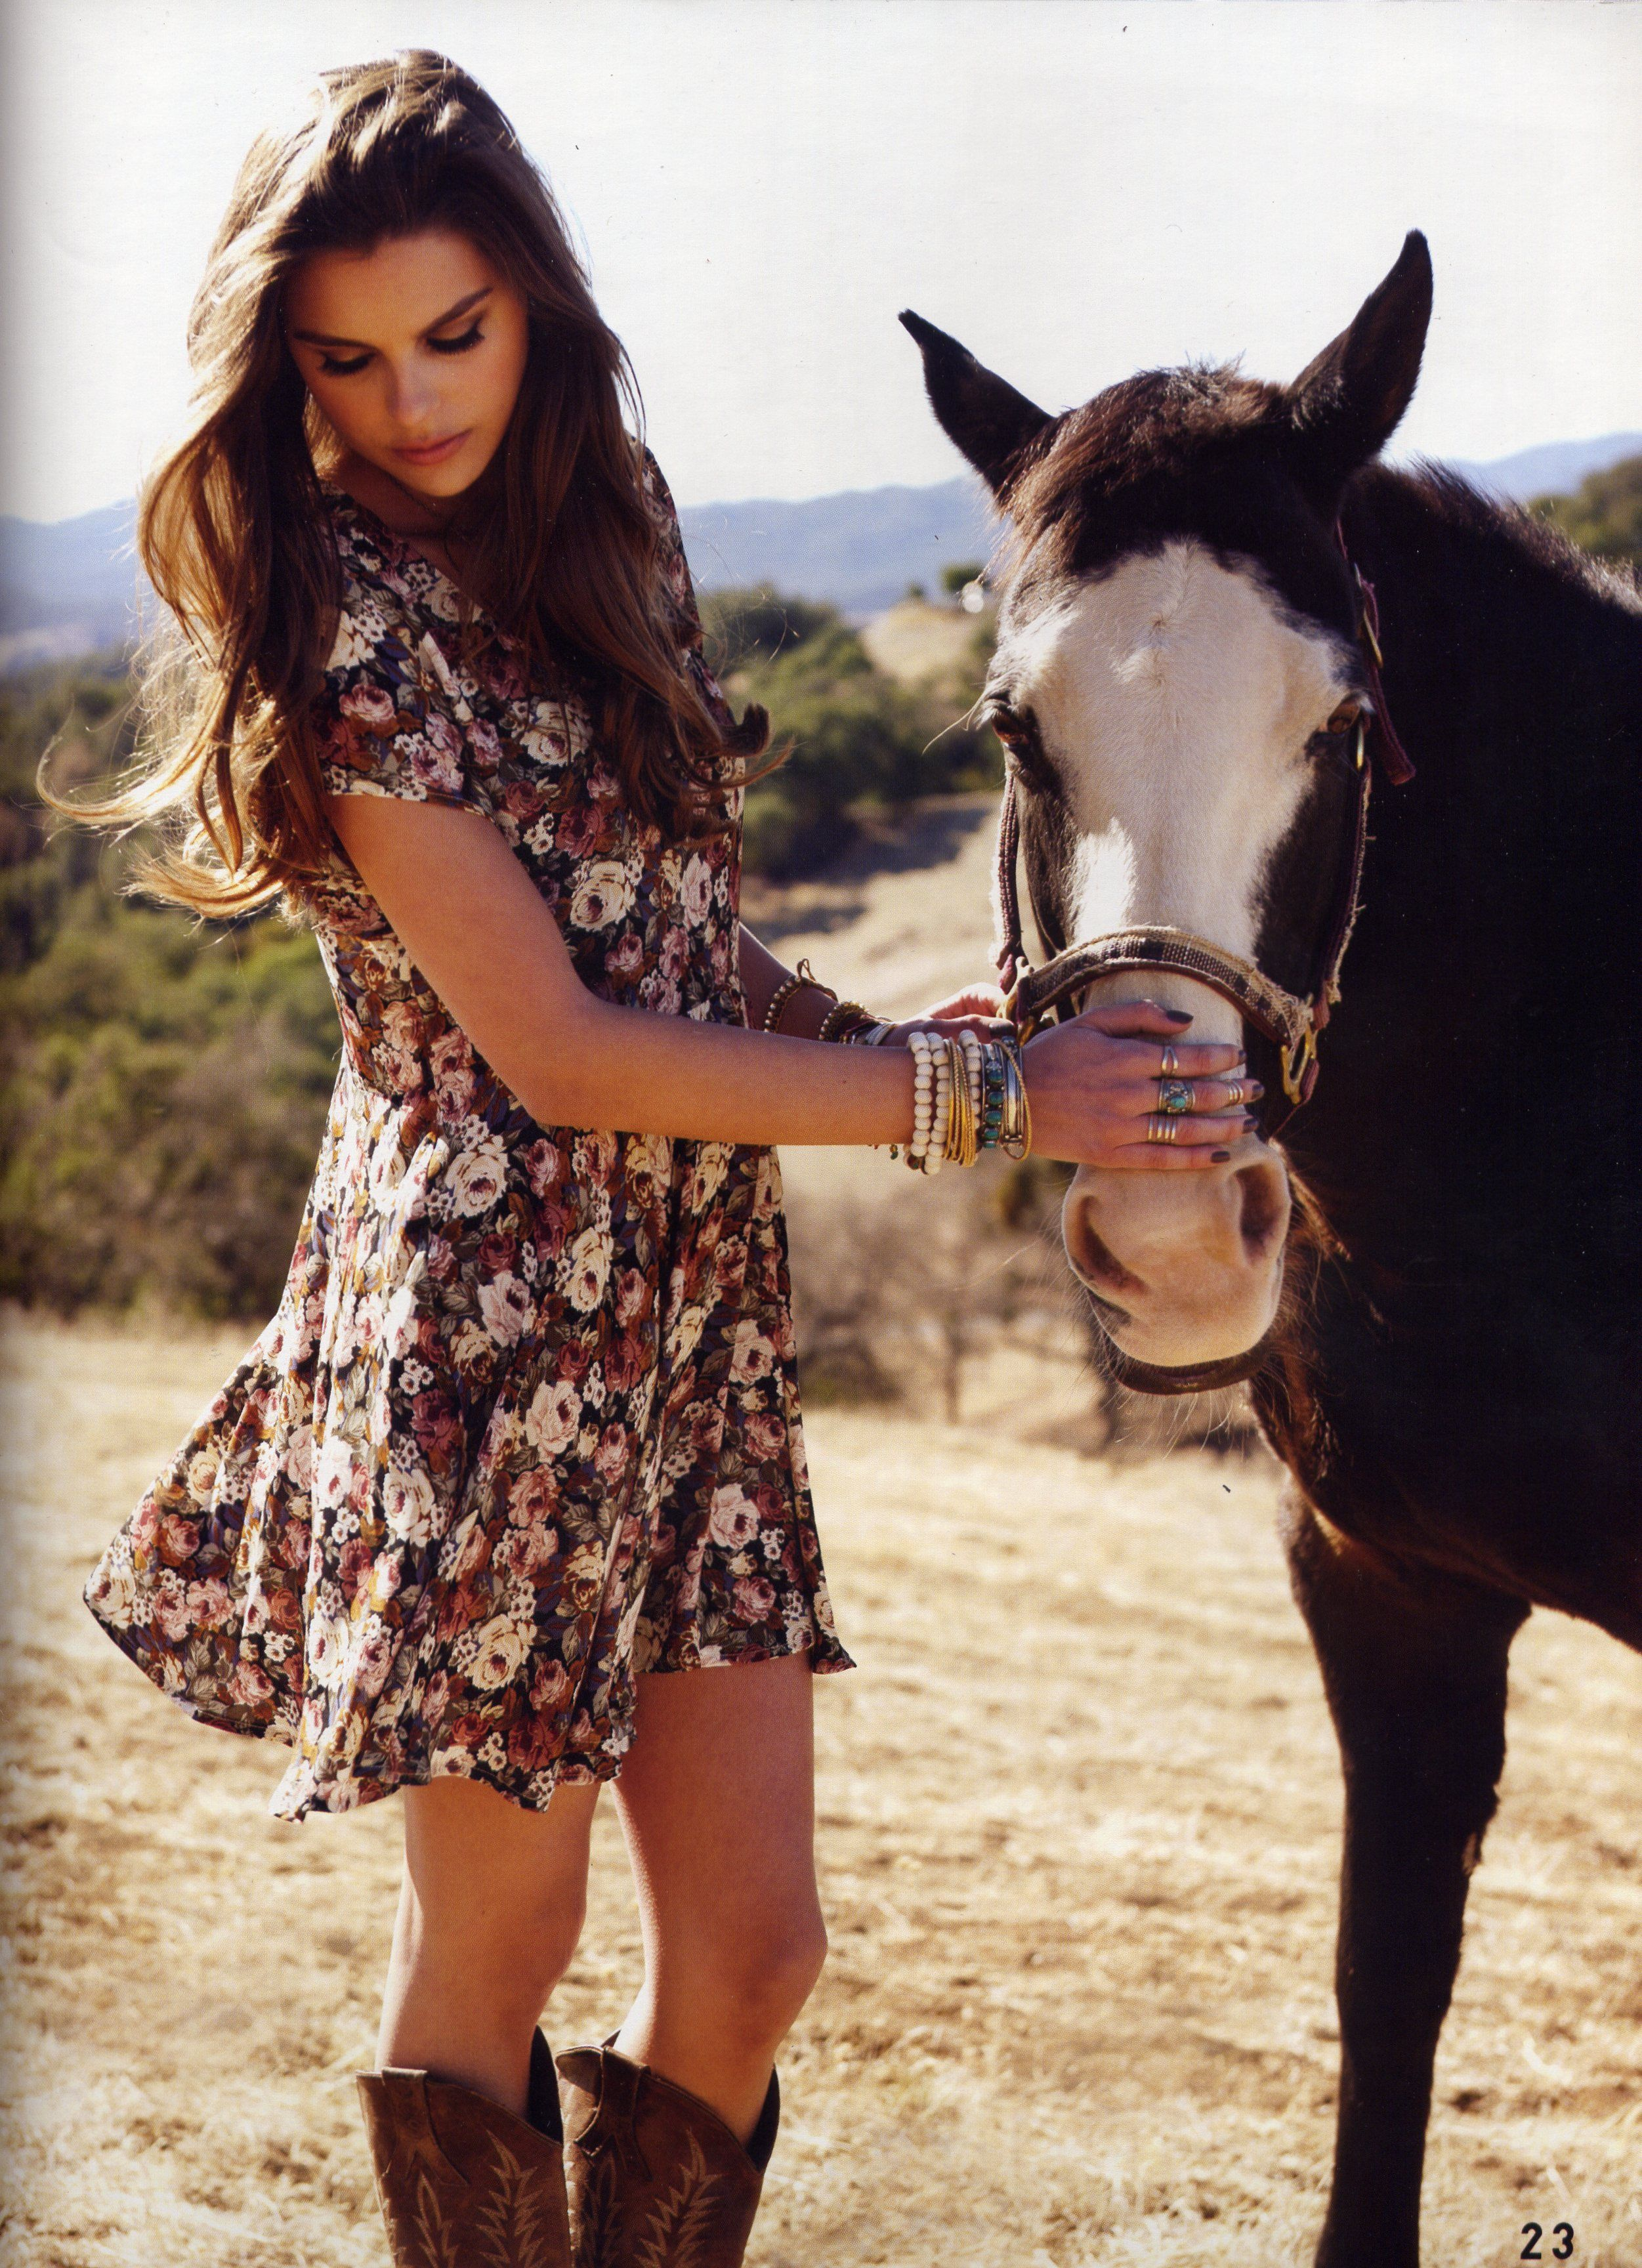 Our horse Sunny in a photo shoot on Lekai Ranch